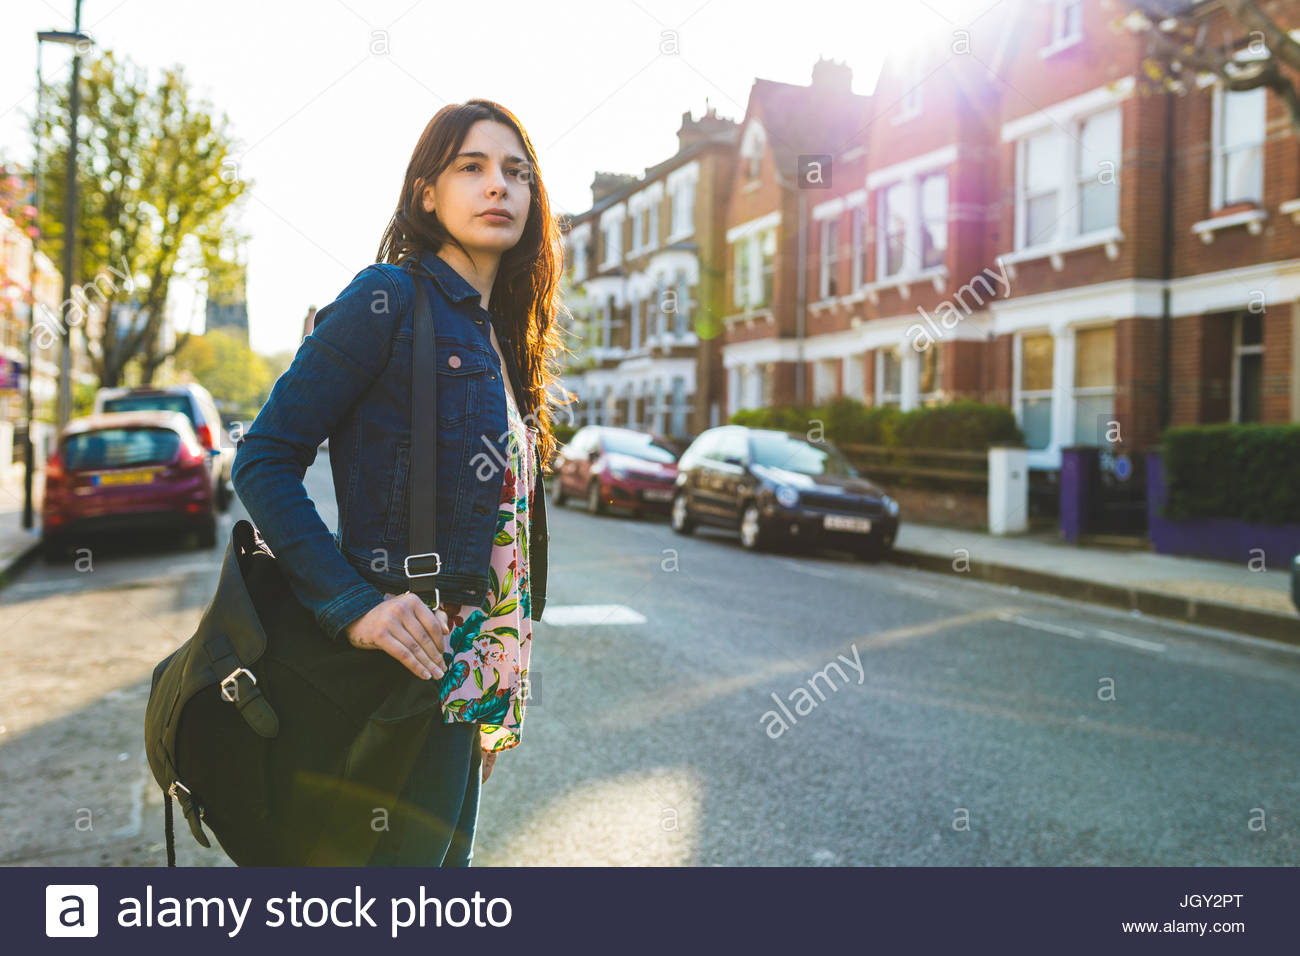 Young woman standing in road, looking down street - Stock Image